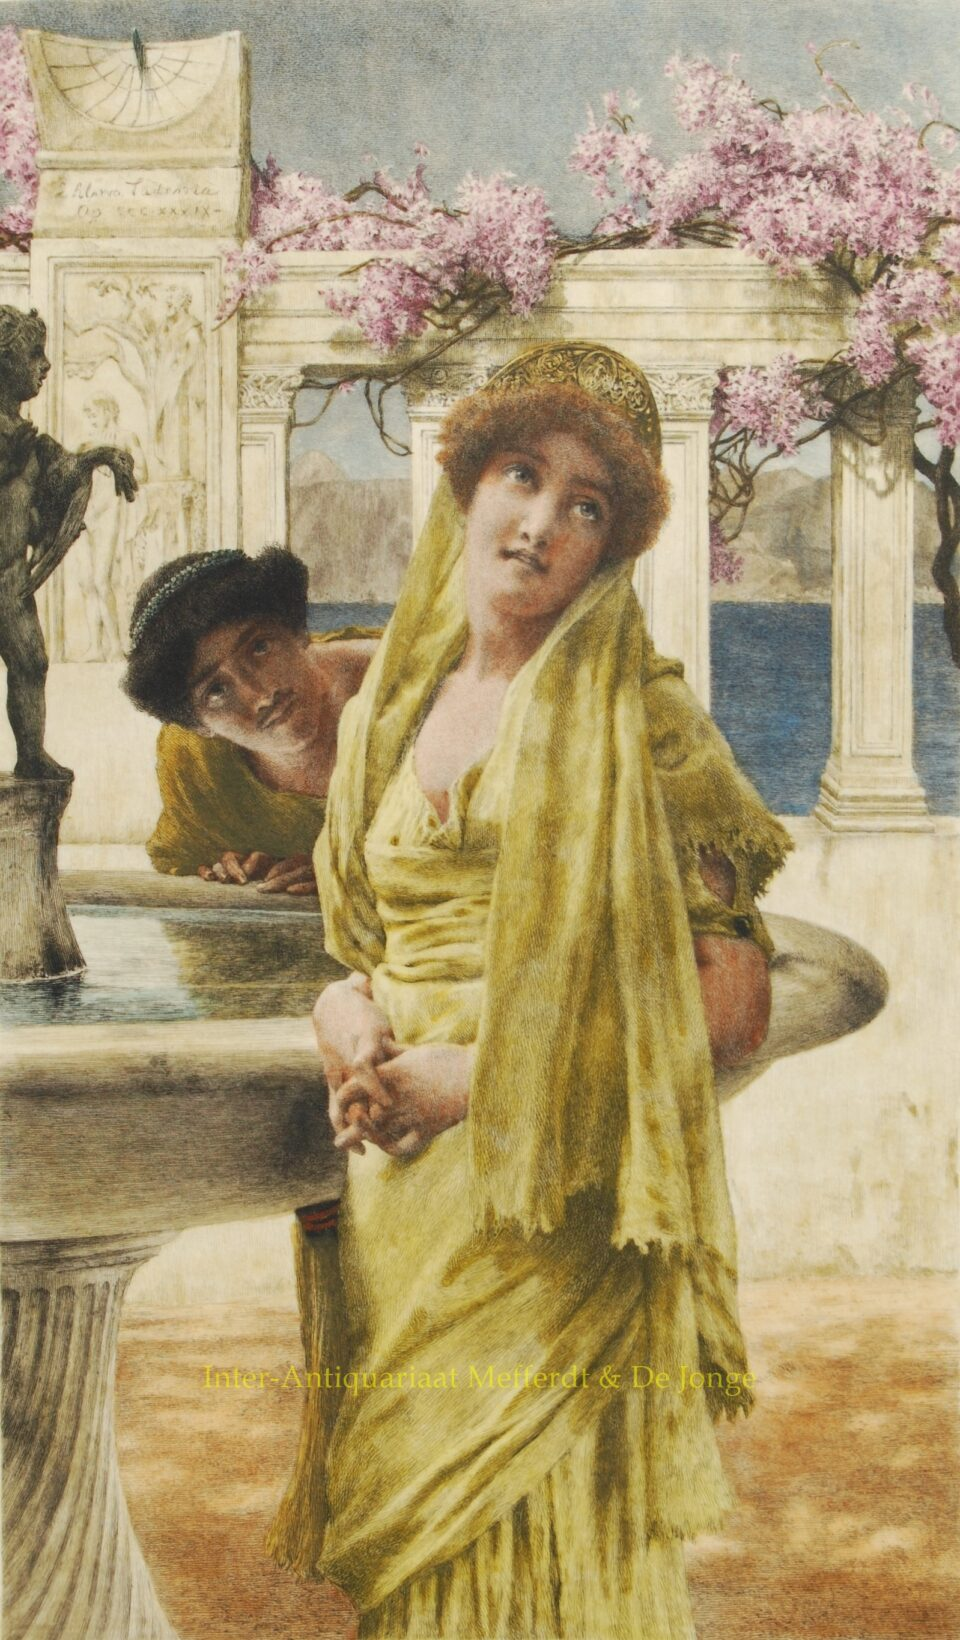 A DIFFERENCE OF OPINION - Alma-Tadema